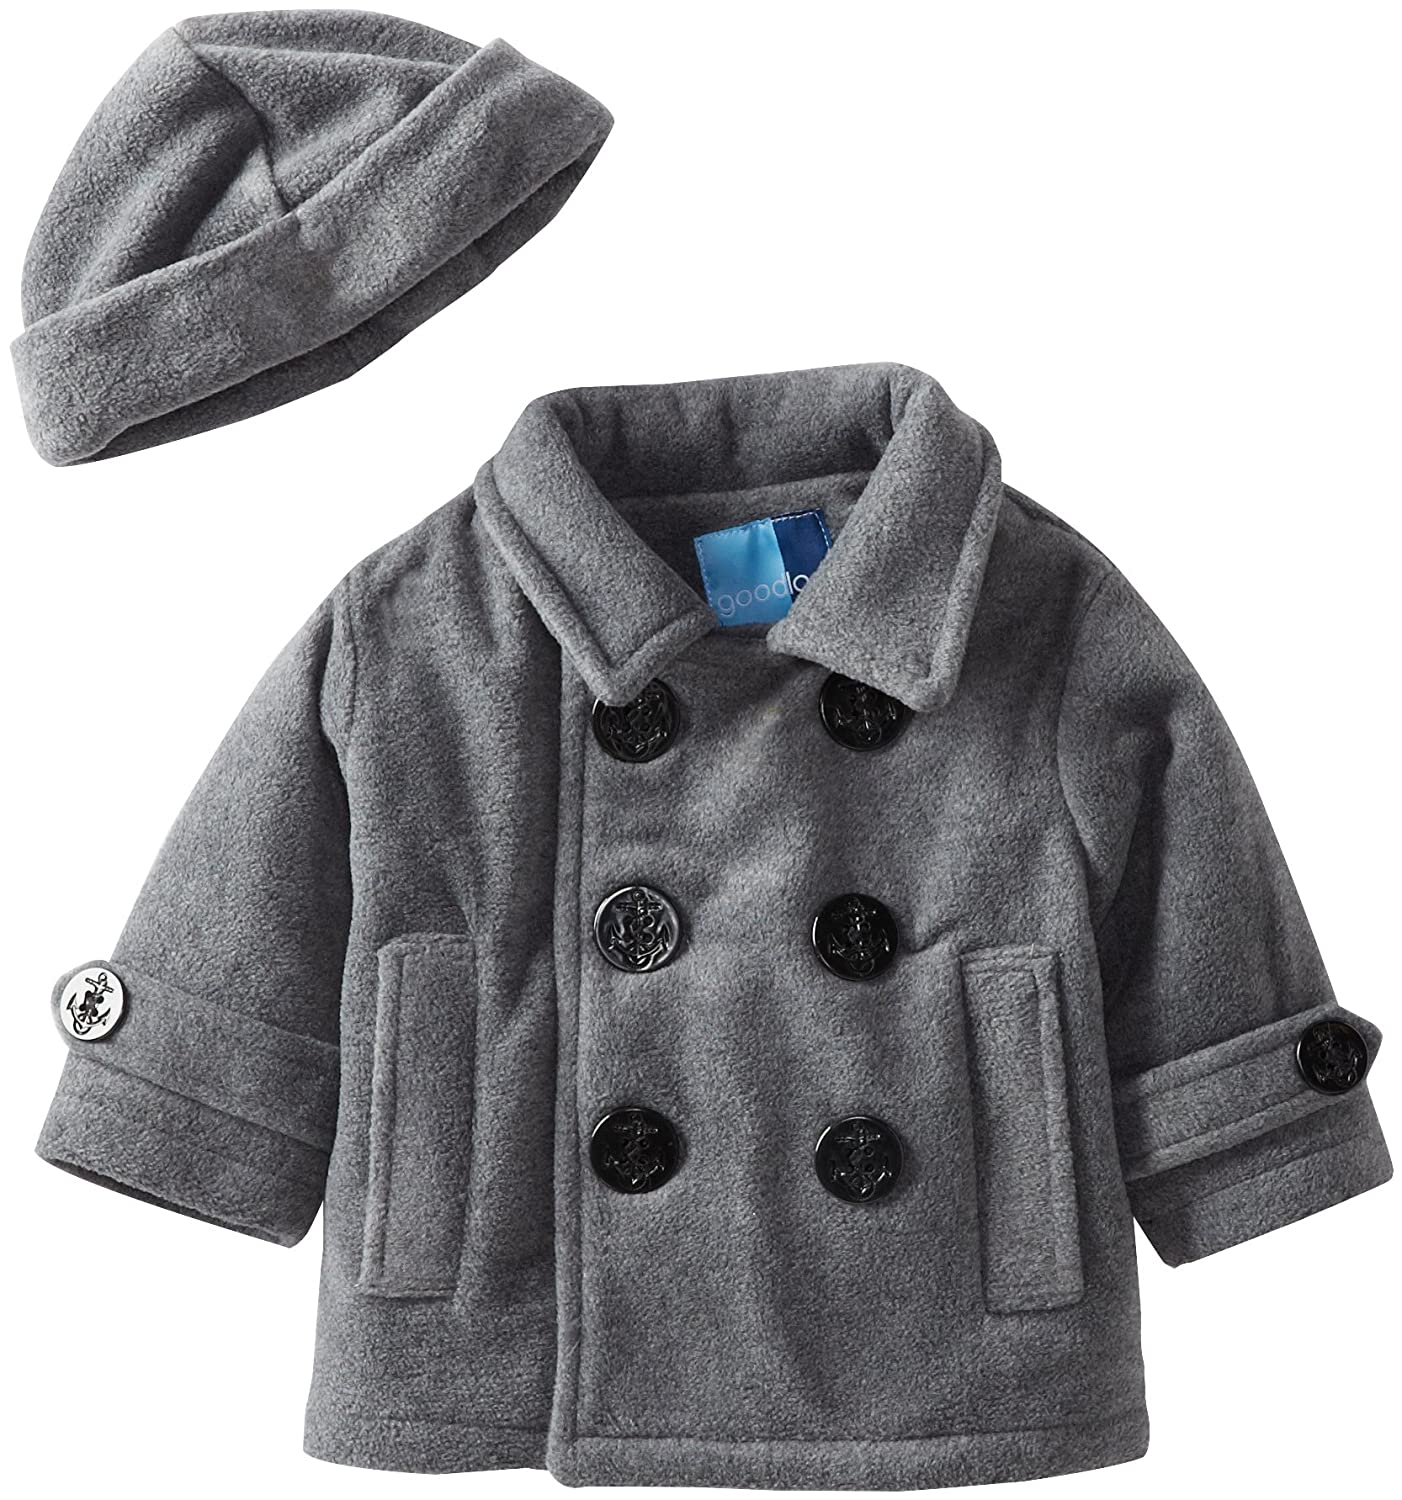 Amazon.com: Good Lad Baby Boys' Peacoat with Hat, Gray, 24 Months ...